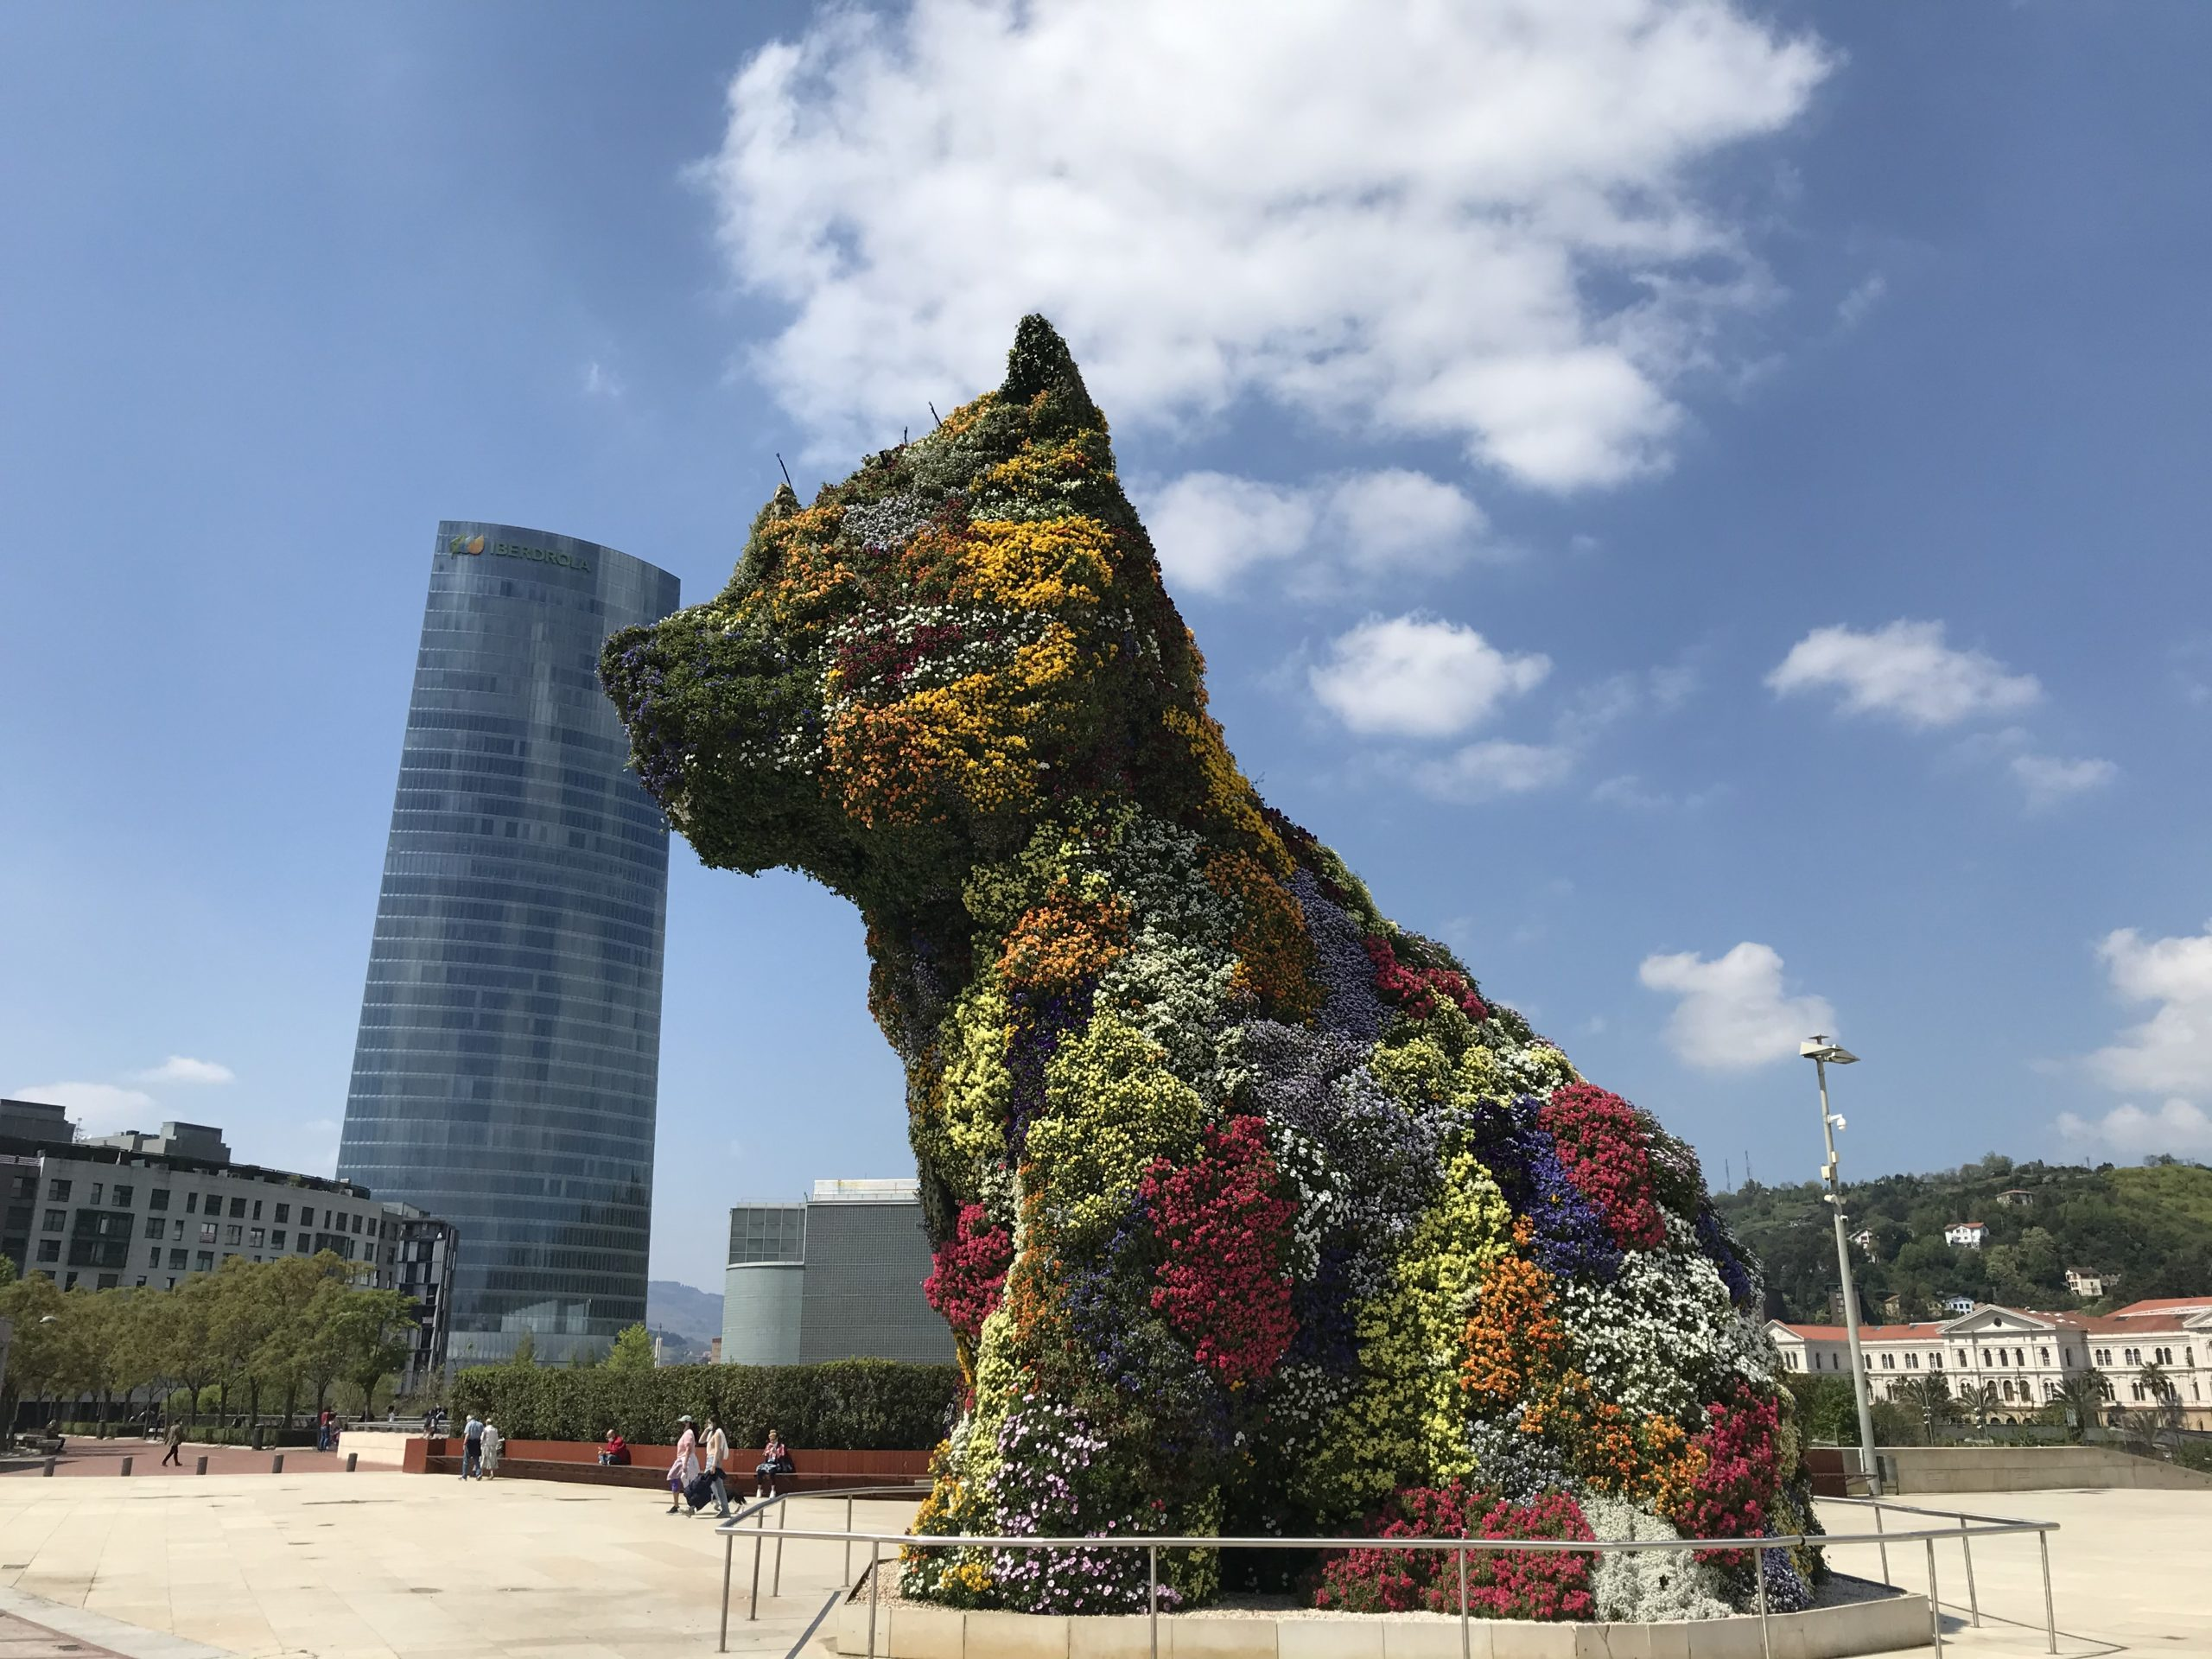 GWC Travel Experts presented Bilbao and the Rioja wine region